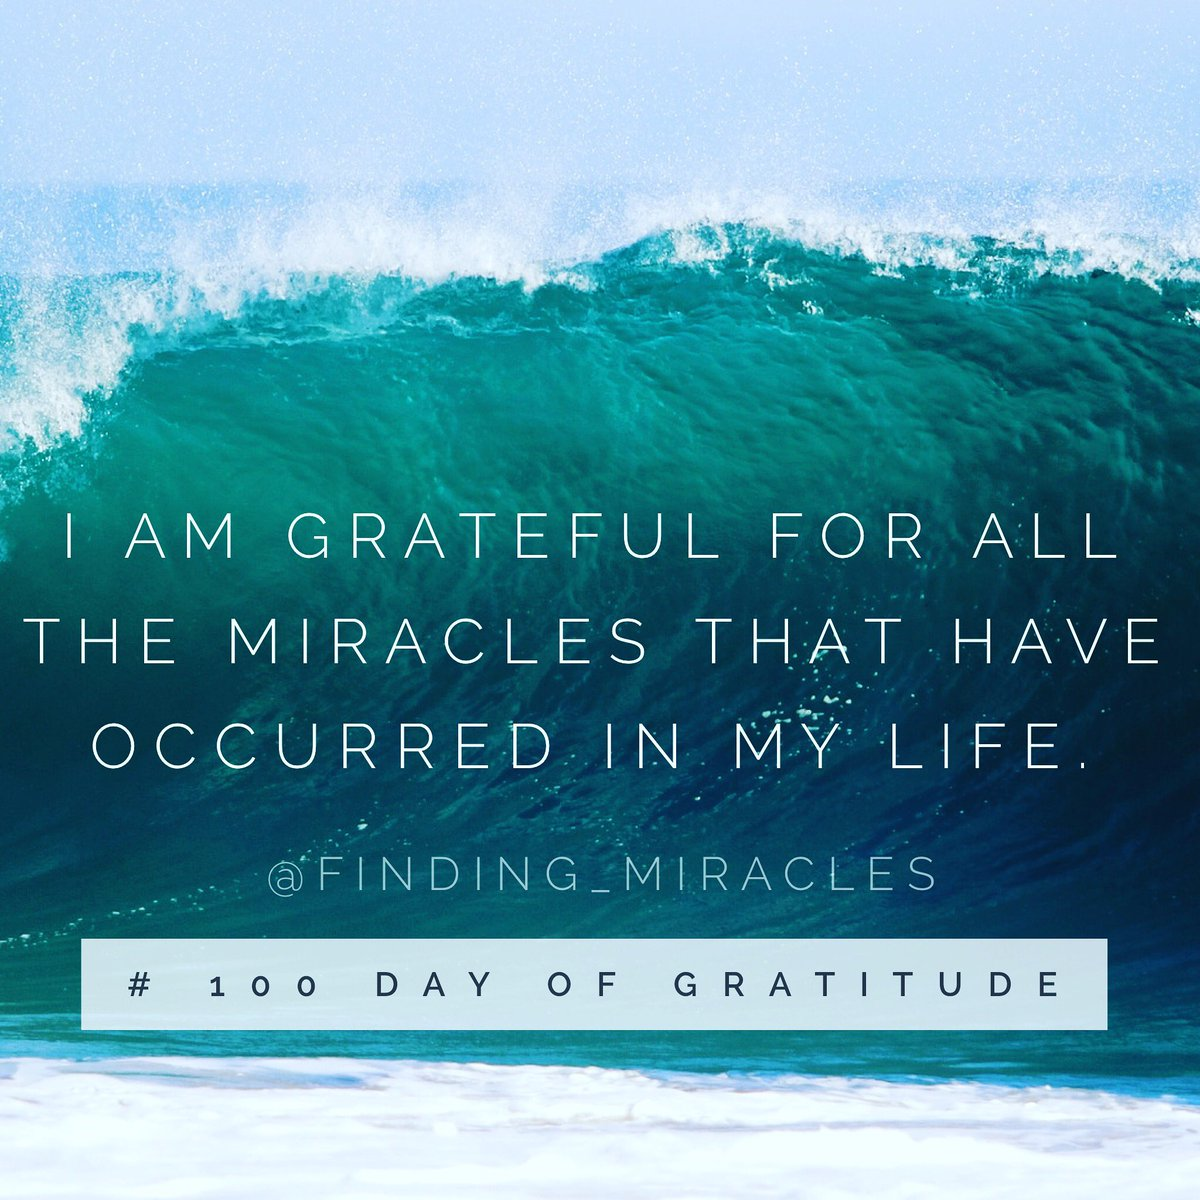 I am grateful for the miracles that have occurred in my life. #InspirationalQuotes #MotivationalQuotes #friday #fridayfeeling #Affirmation<br>http://pic.twitter.com/yWoK9mxBzo